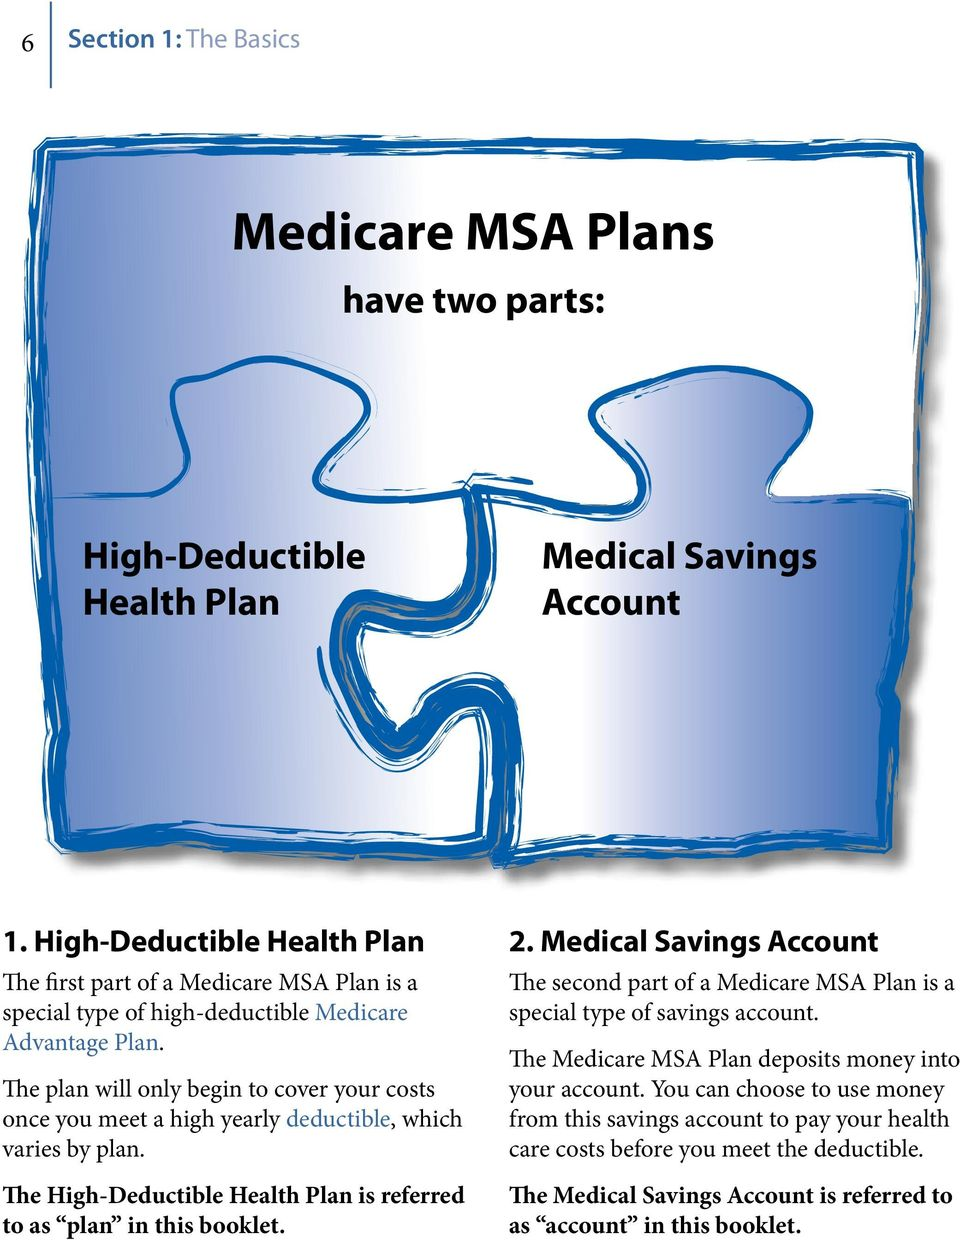 The plan will only begin to cover your costs once you meet a high yearly deductible, which varies by plan. The High-Deductible Health Plan is referred to as plan in this booklet. 2.